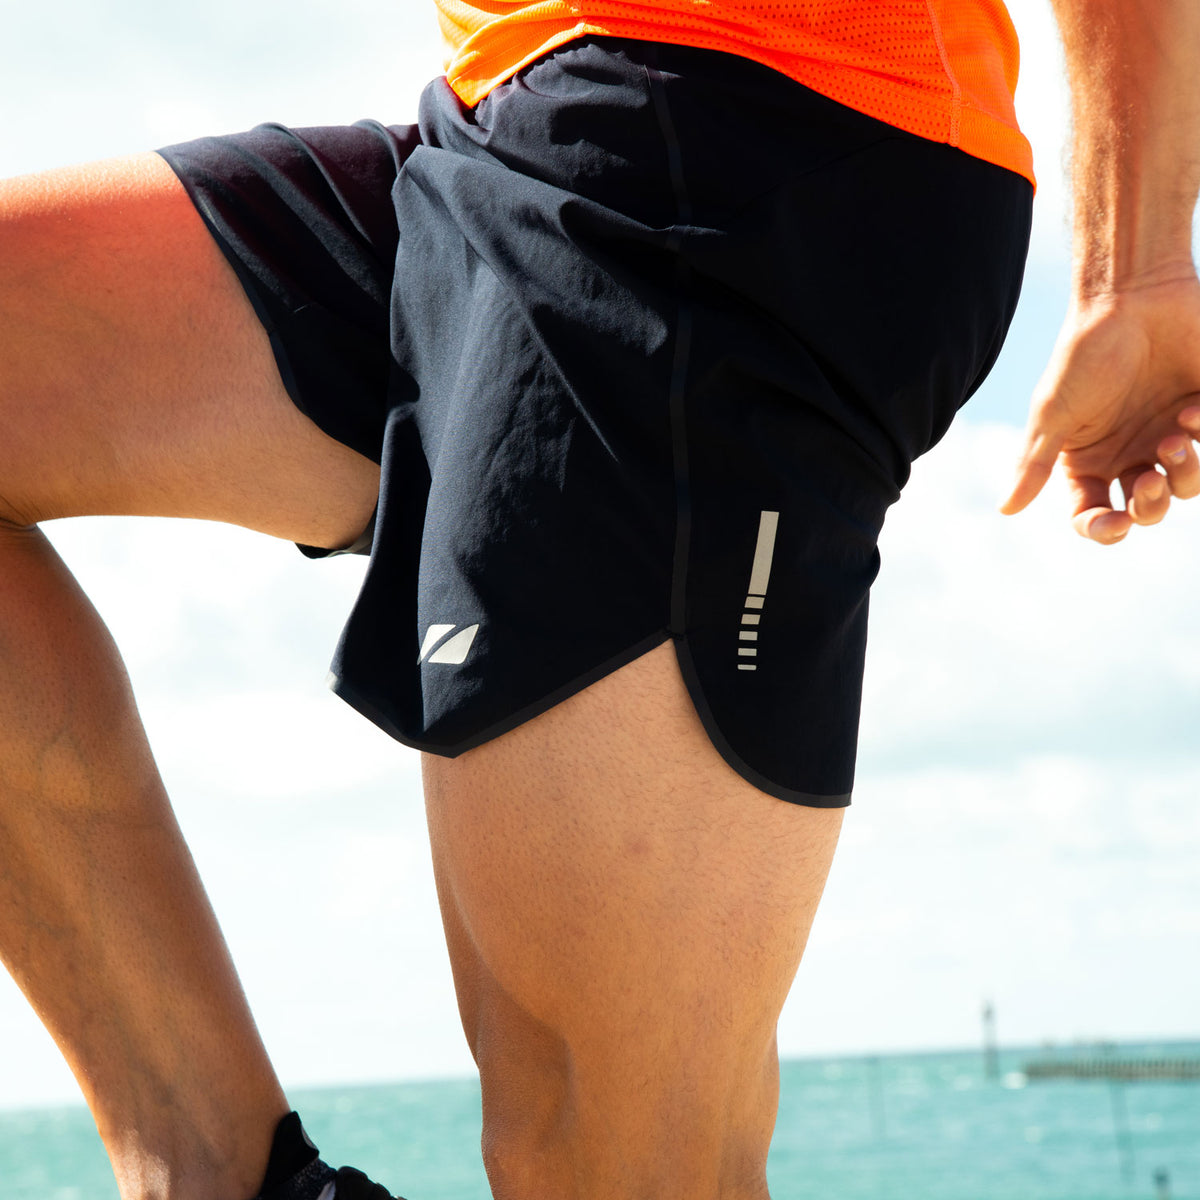 Phantom Lightweight Performance Run Shorts 7""